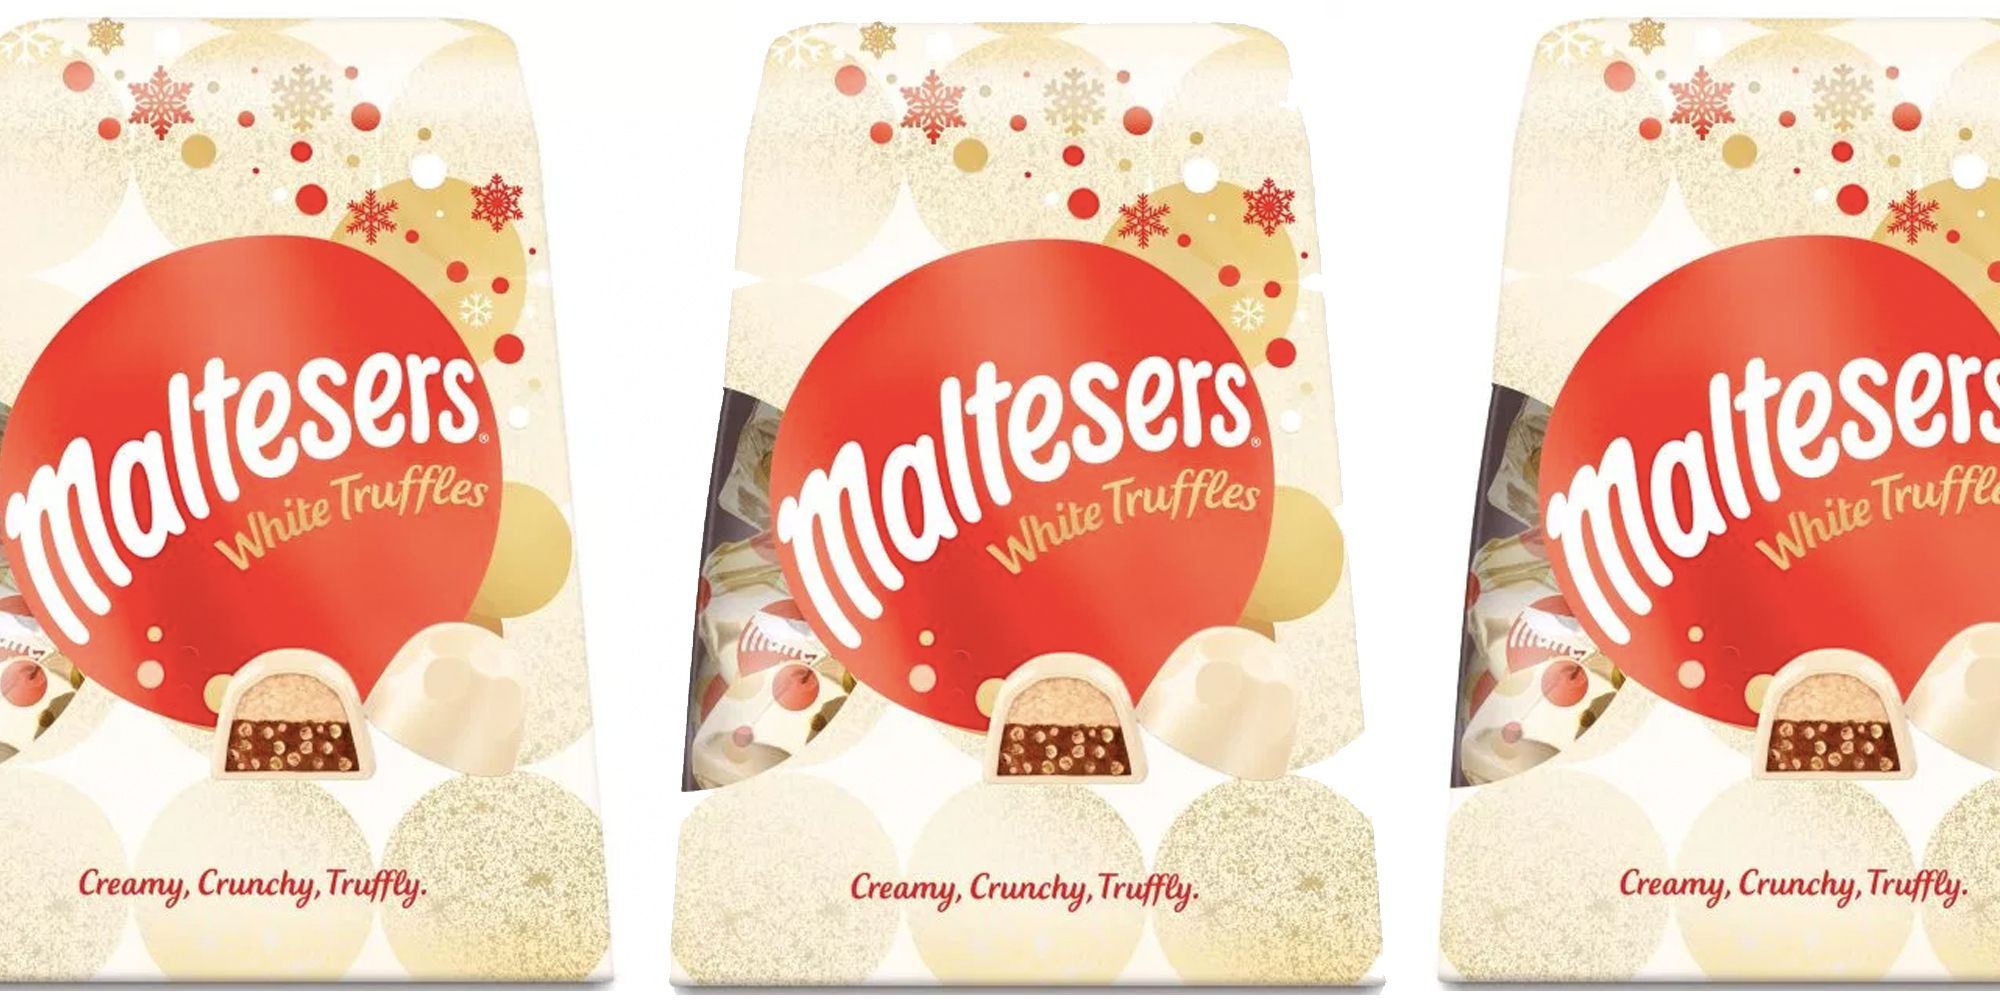 Maltesers is bringing out a white chocolate version of their truffles